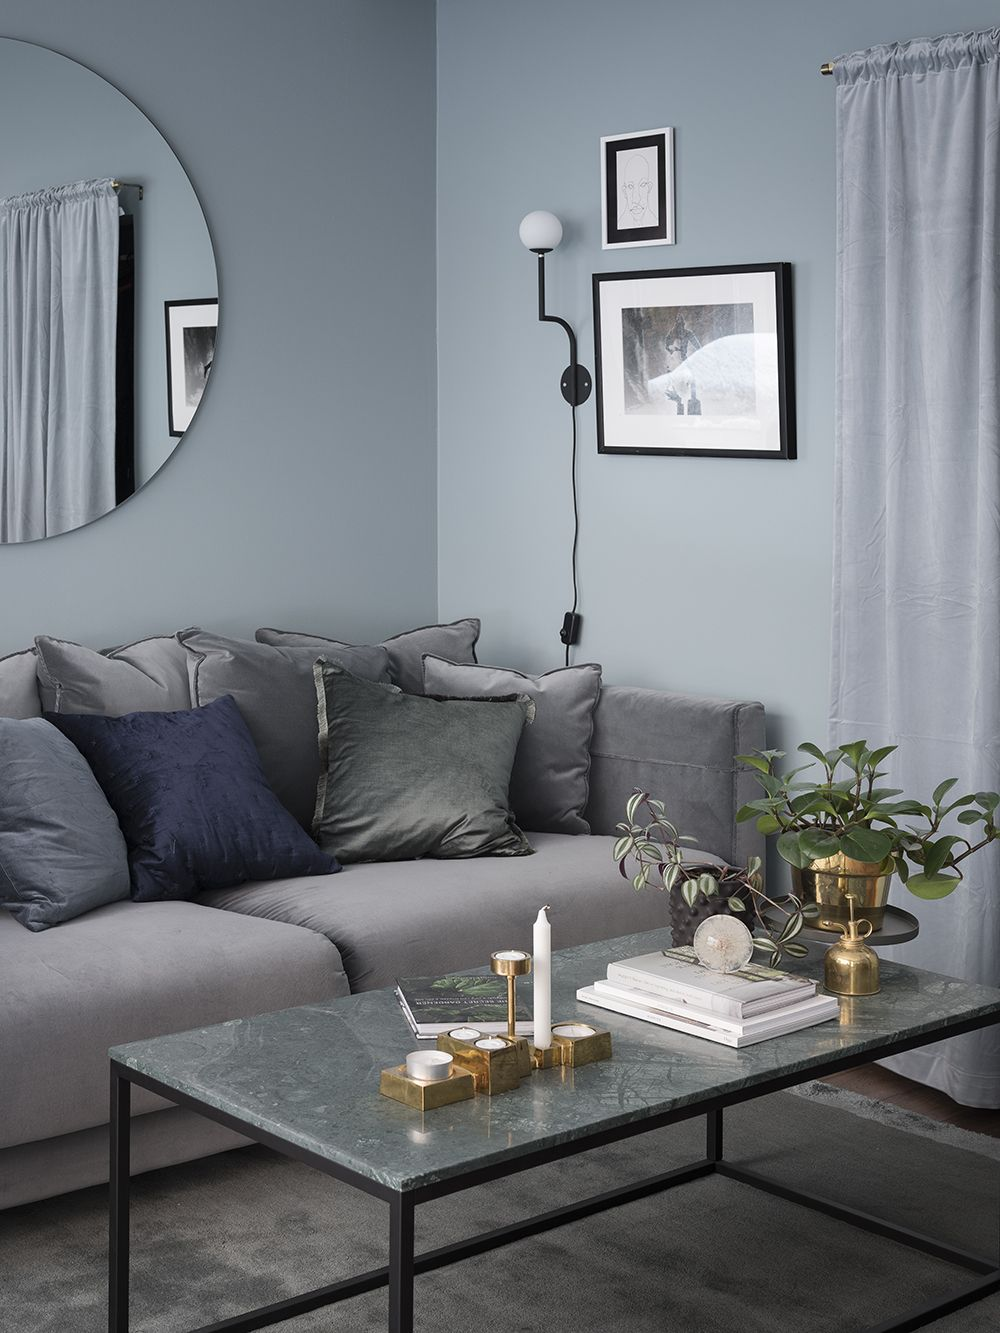 Blue livingroom with Scandinavian style interior and